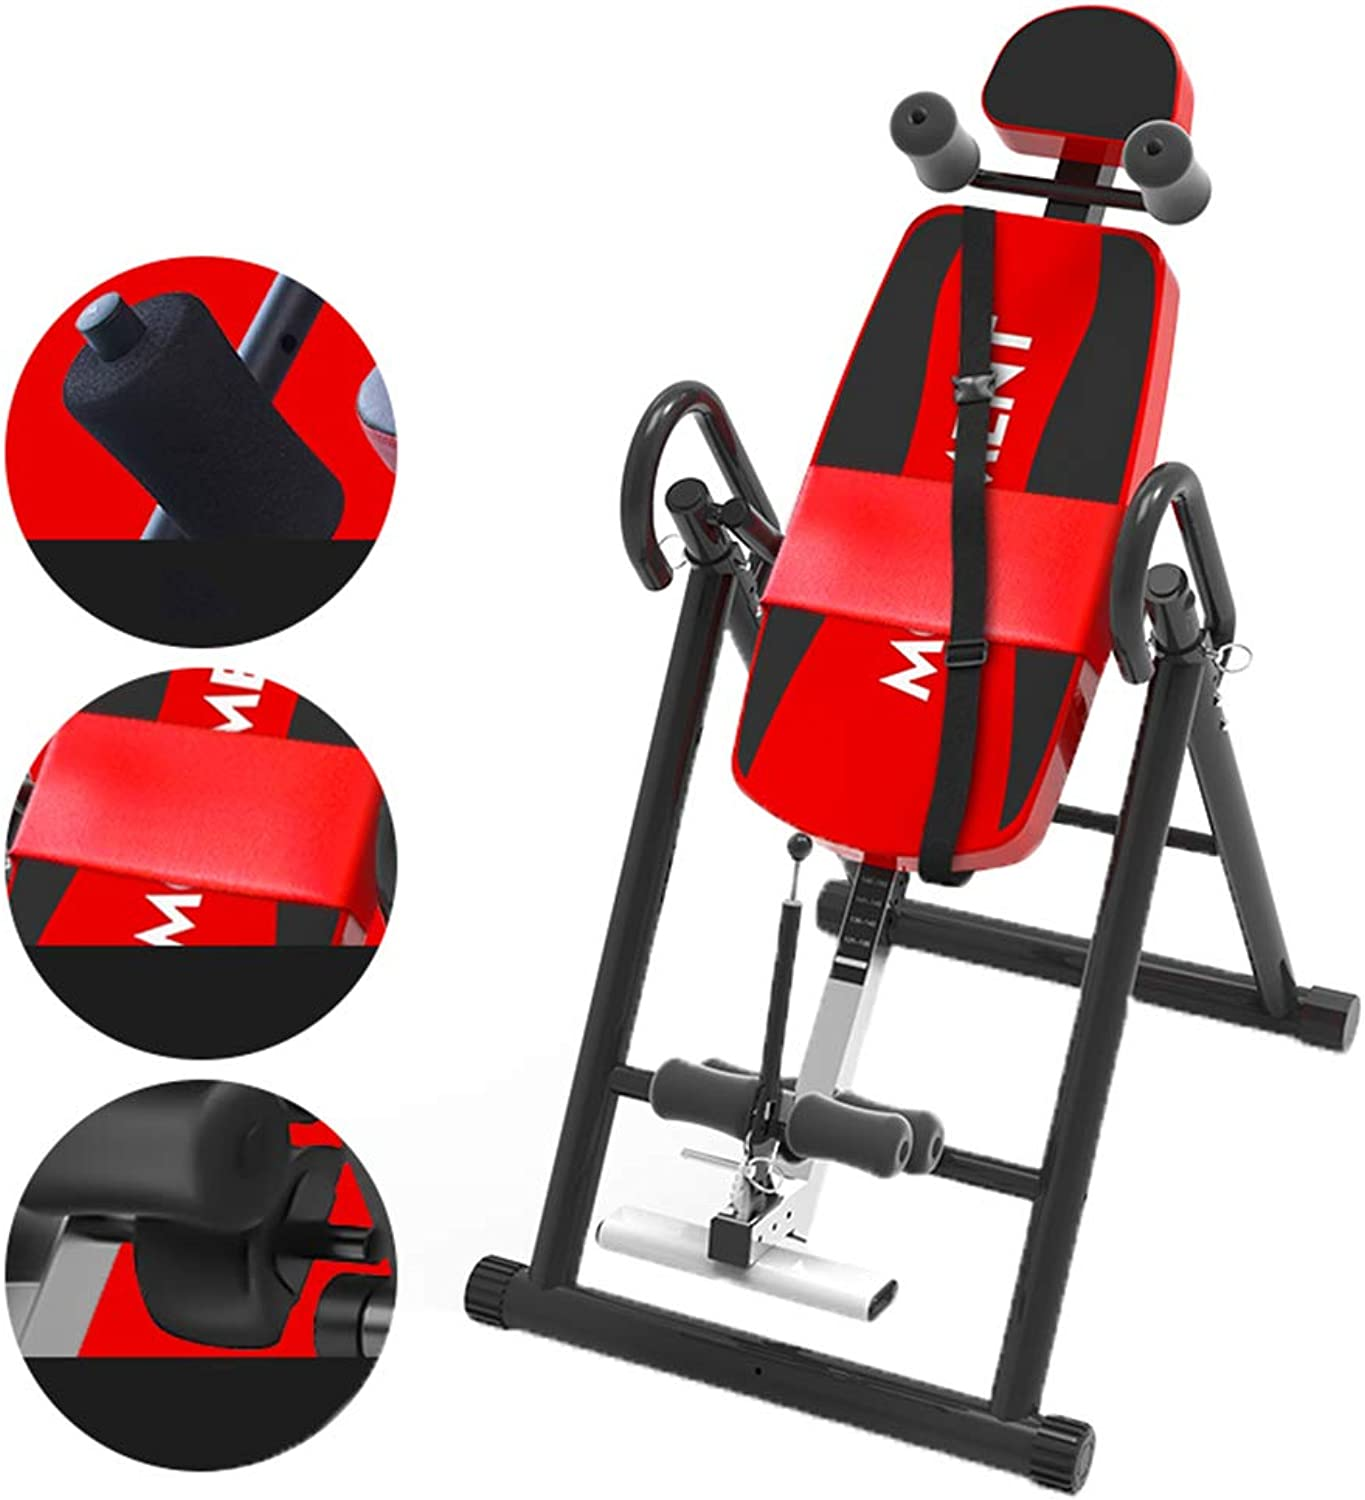 Inversion Table Suspension Trainer Inversion Airbag Waist Pad Upgrade Brake HomeAssisted Yoga intergreenebral disc Length Increases Physical Fitness Equipment